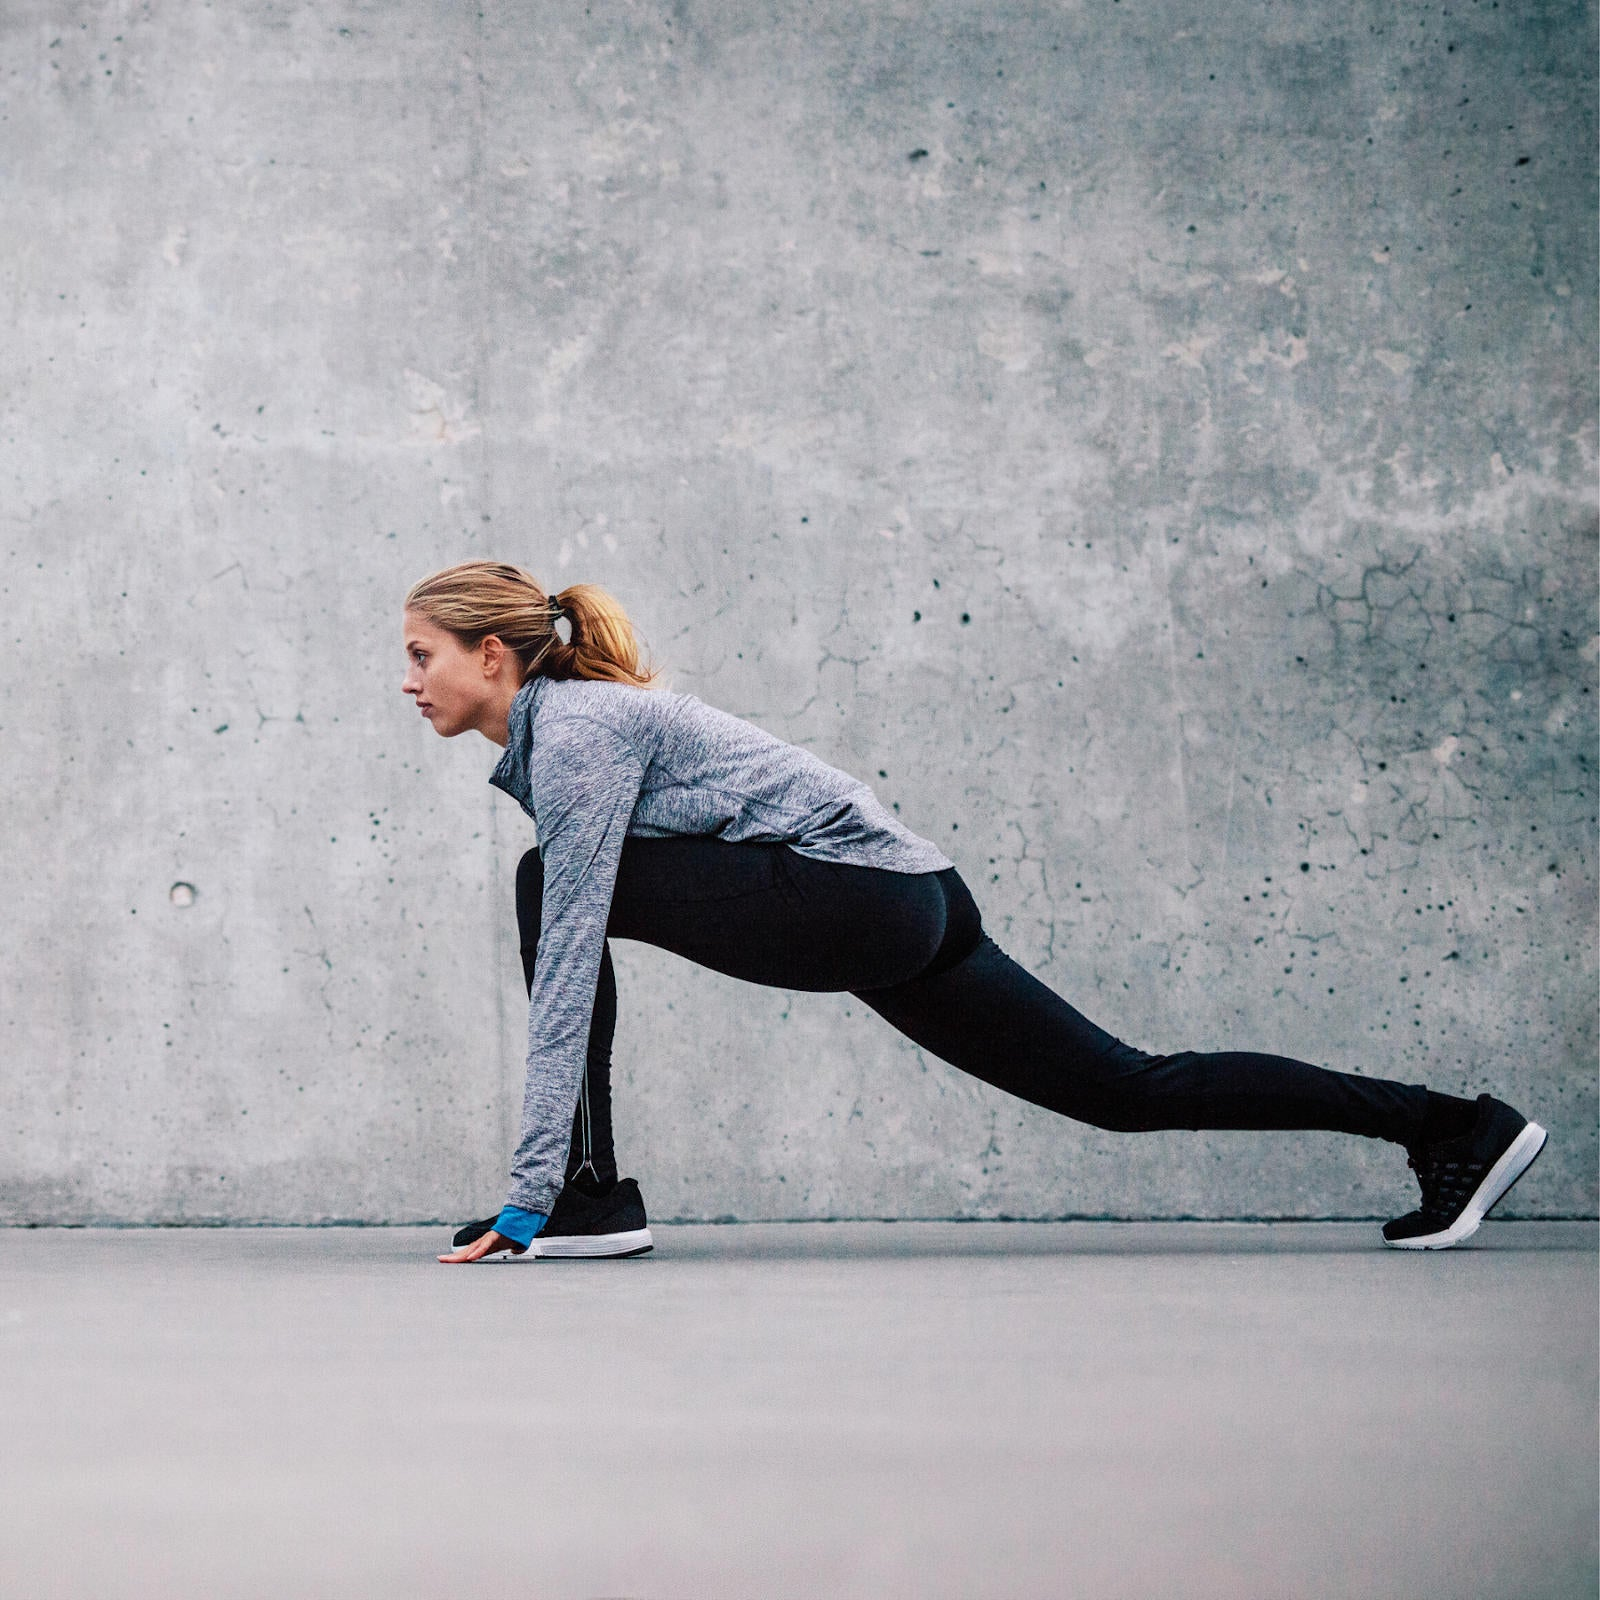 Athletic young woman stretching before going on a run